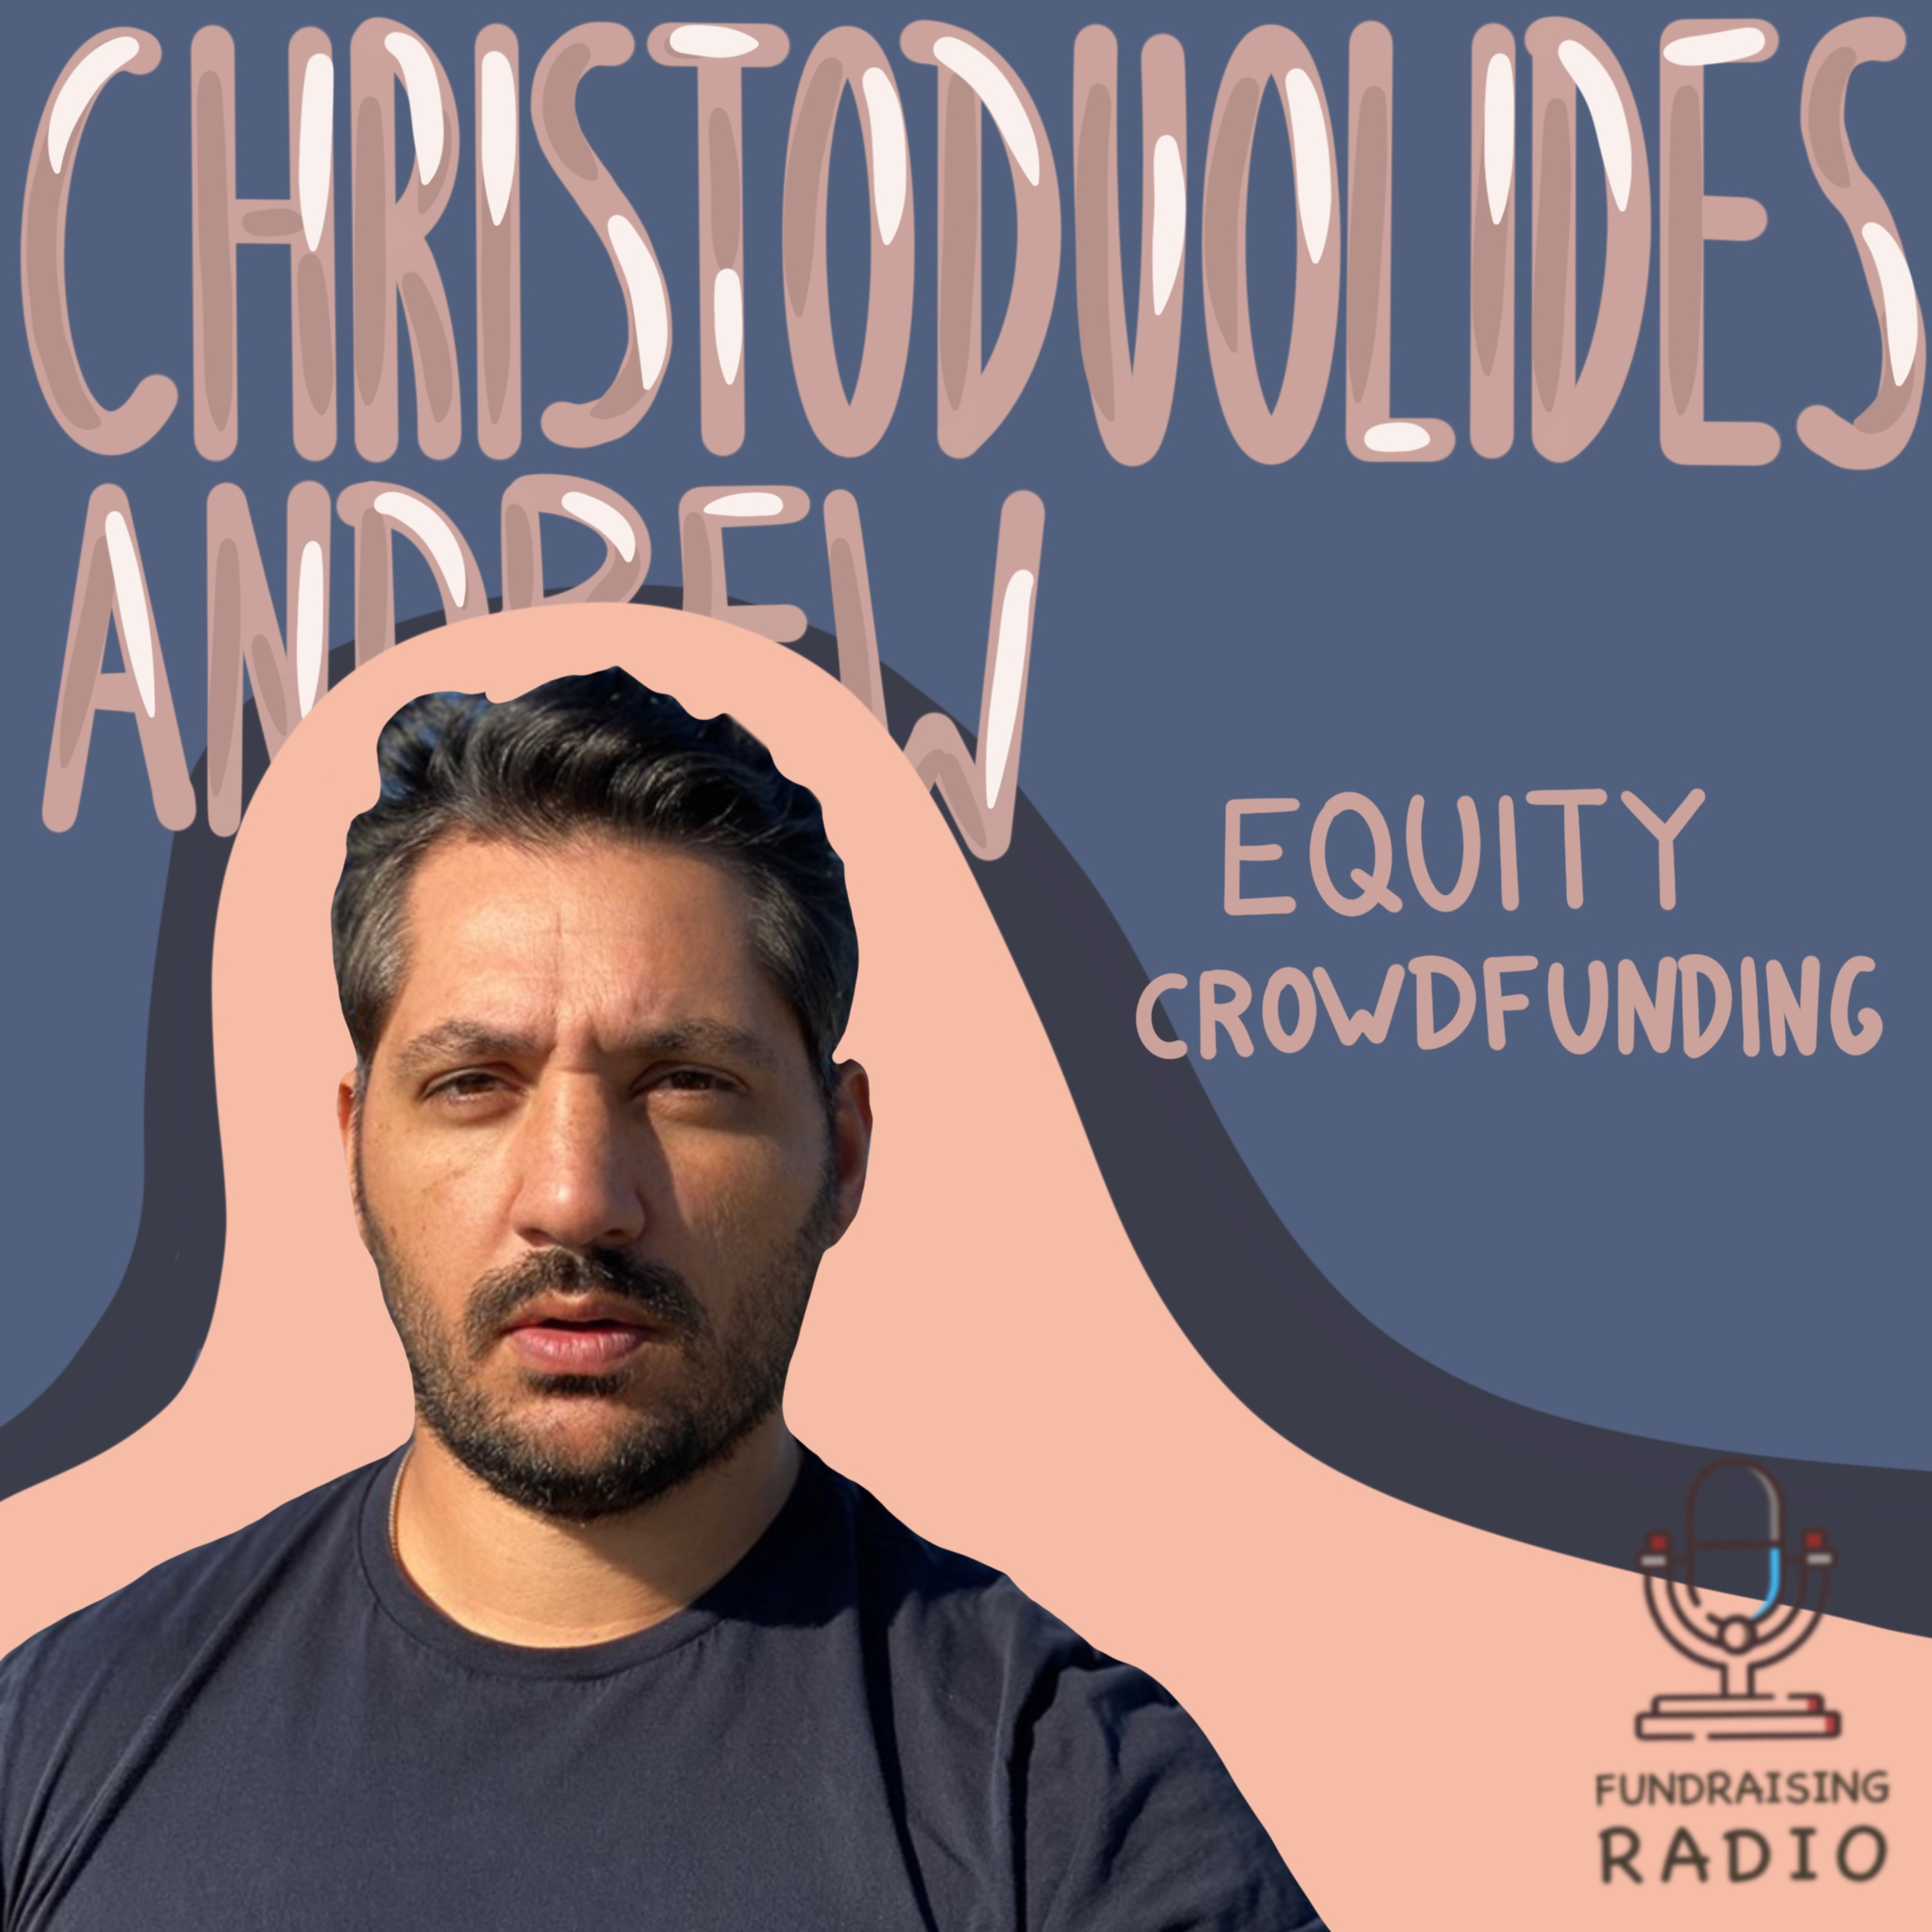 Two rounds through equity crowdfunding - lessons learned. By Andrew Christodoulides.